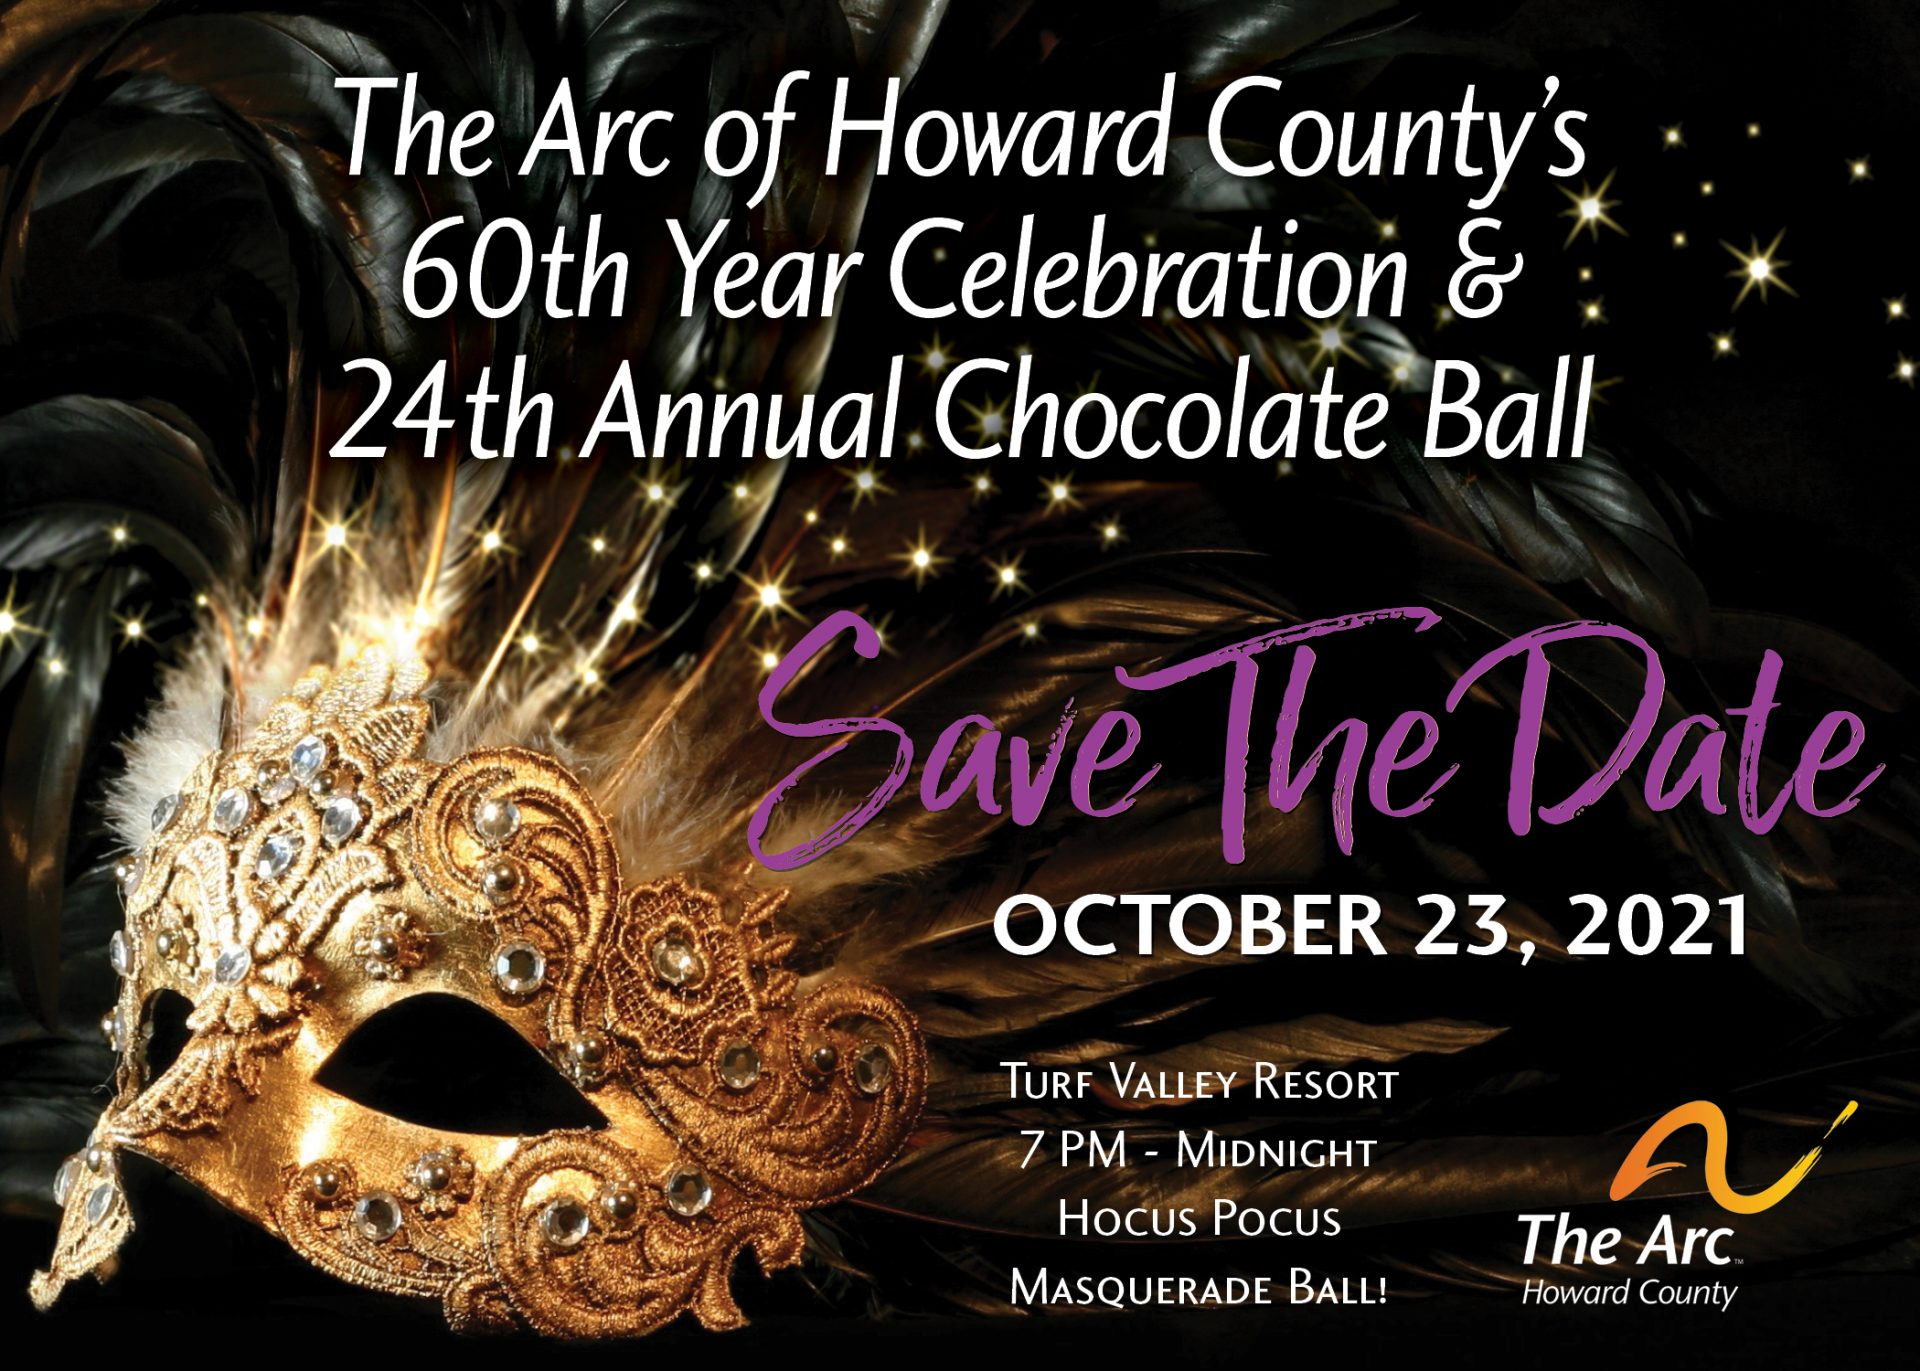 Save the Date for the 60th Year Celebration and 24th Annual Chocolate Ball